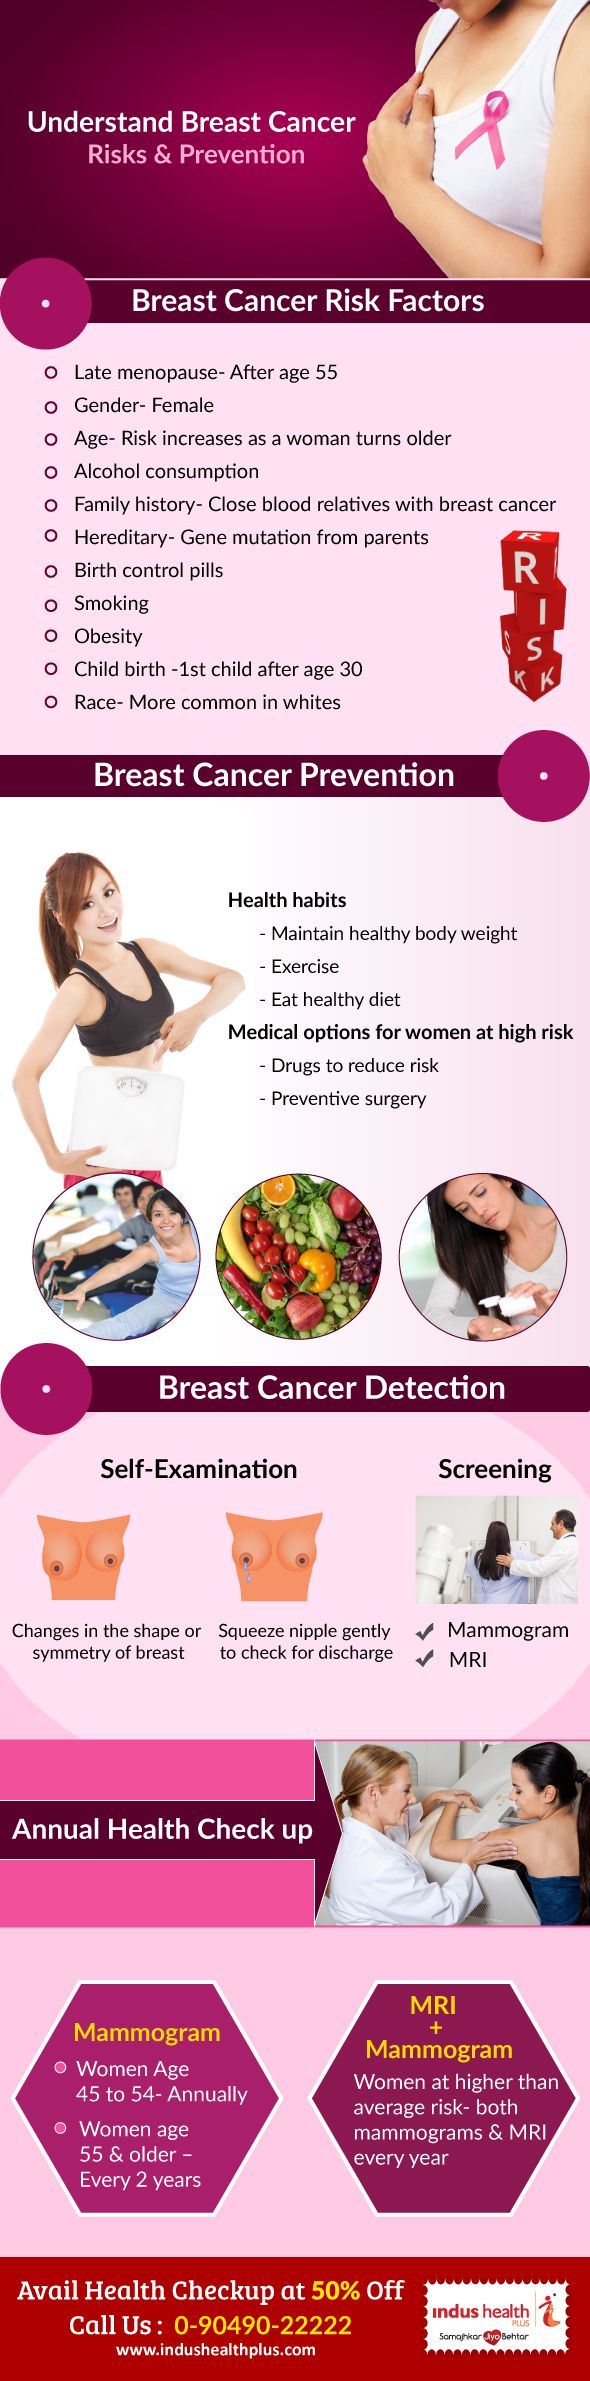 essays on breast cancer screening Information from the national cancer institute about cancer treatment, prevention, screening, genetics, causes, and how to cope with cancer.